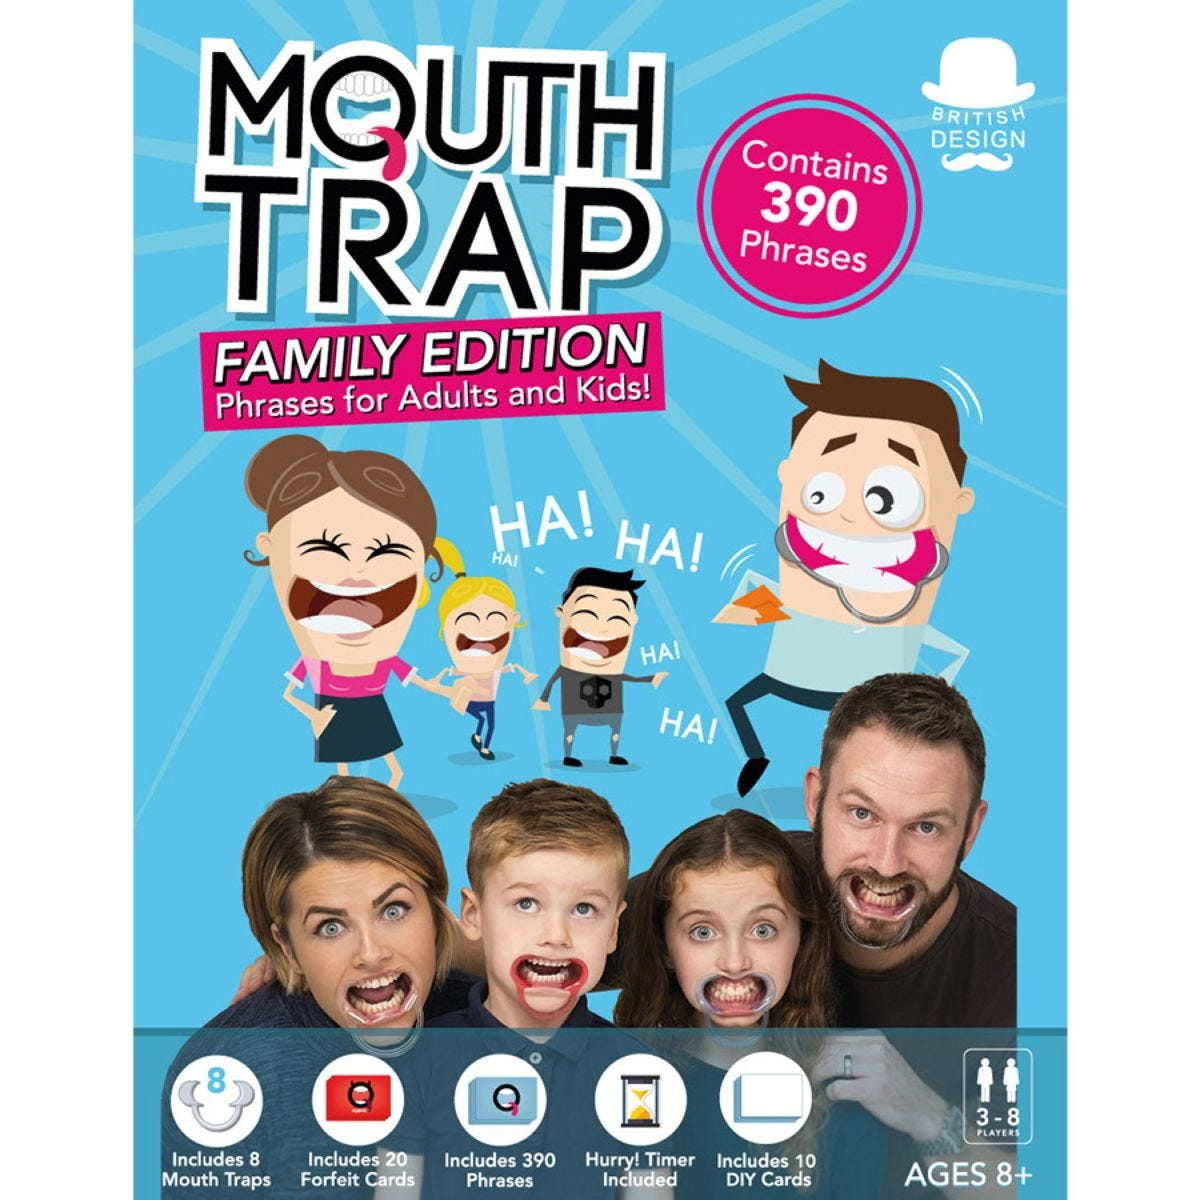 Mouth Trap Family Edition